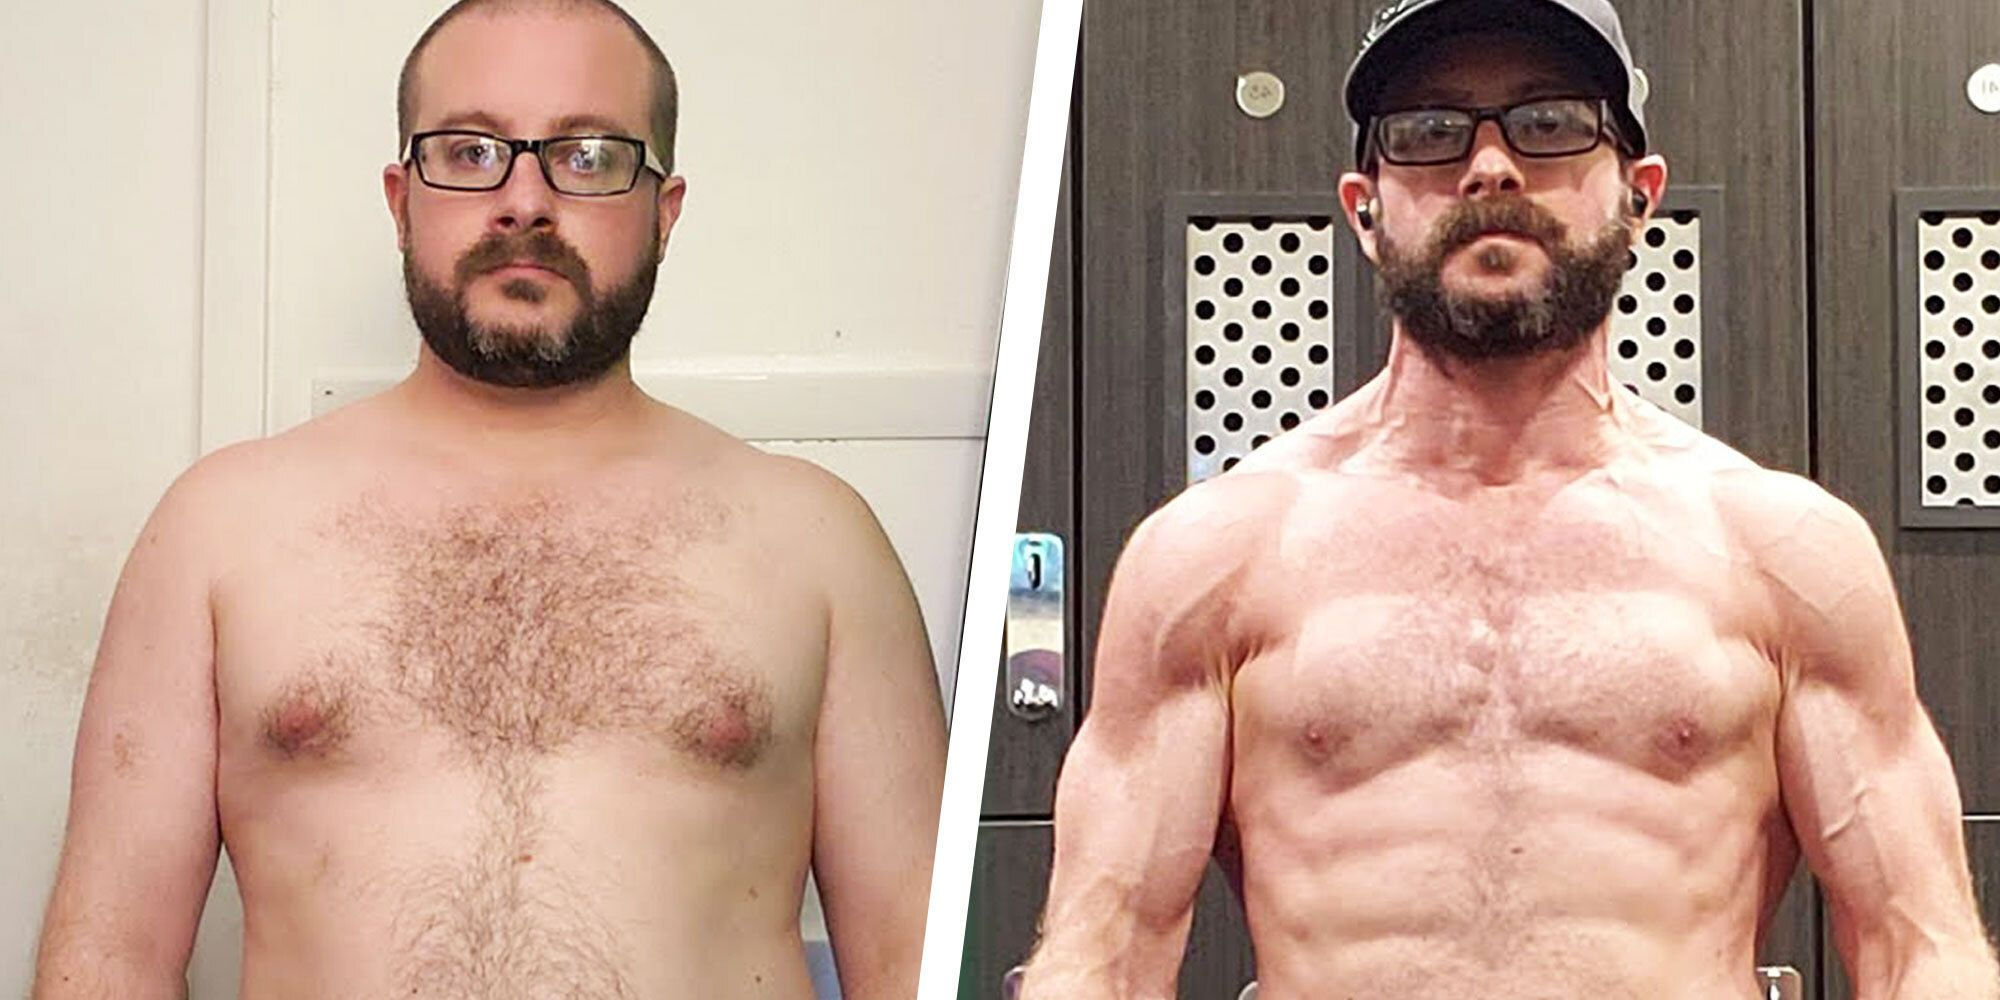 How This Guy Burned 5 Percent of His Body Fat and Got Ripped